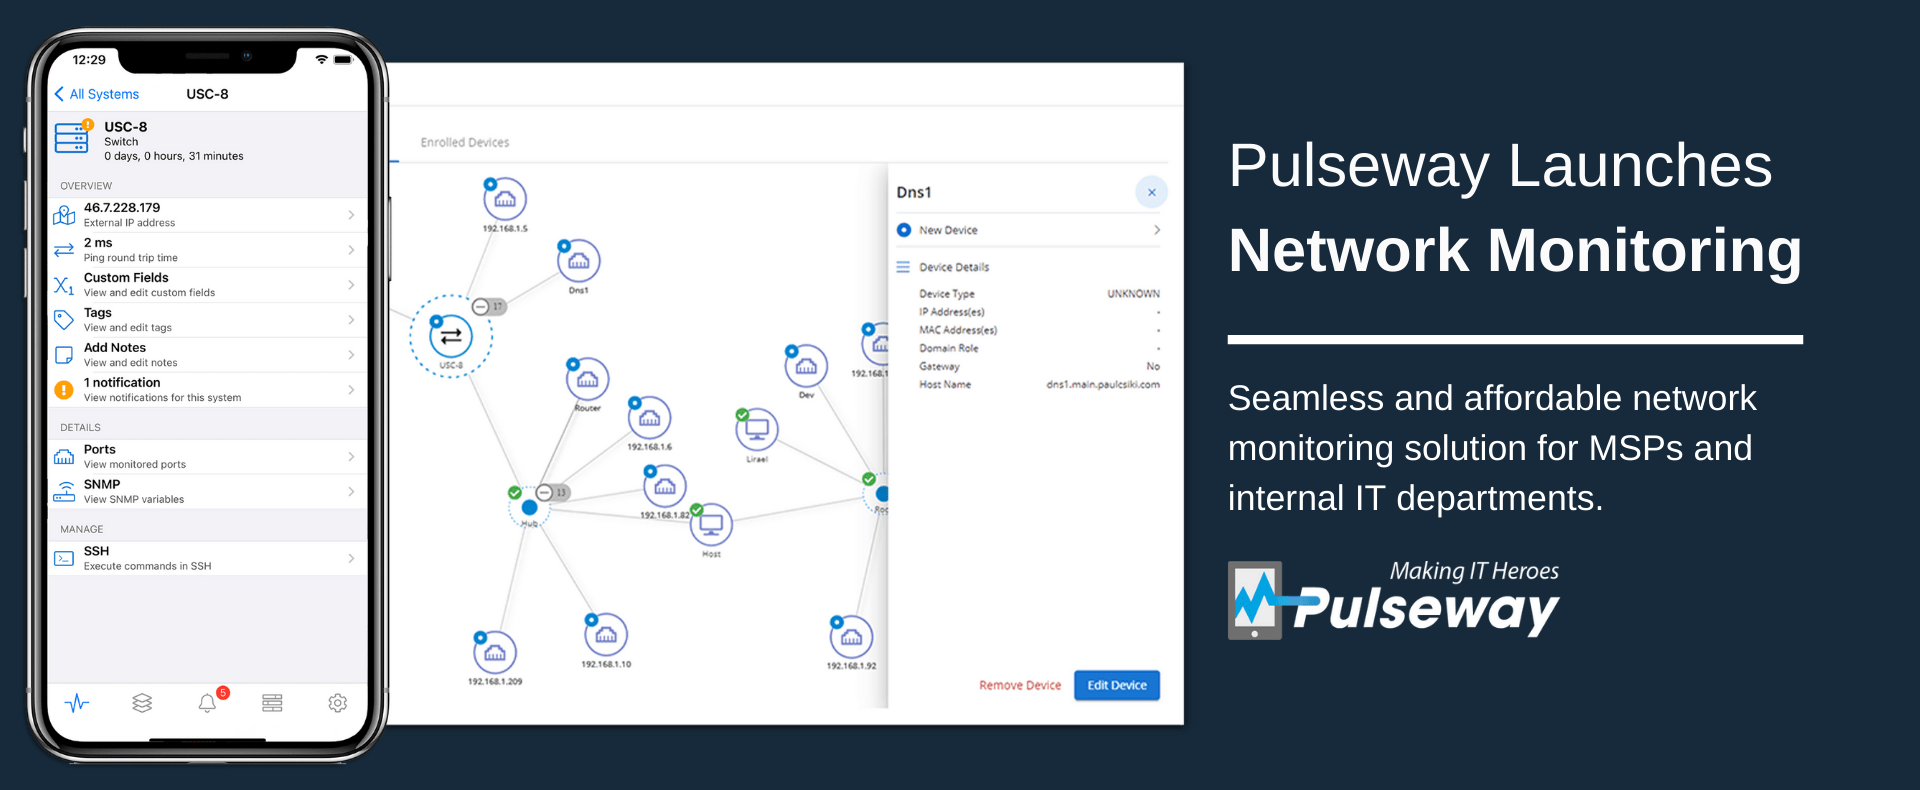 Pulseway Launches Network Monitoring